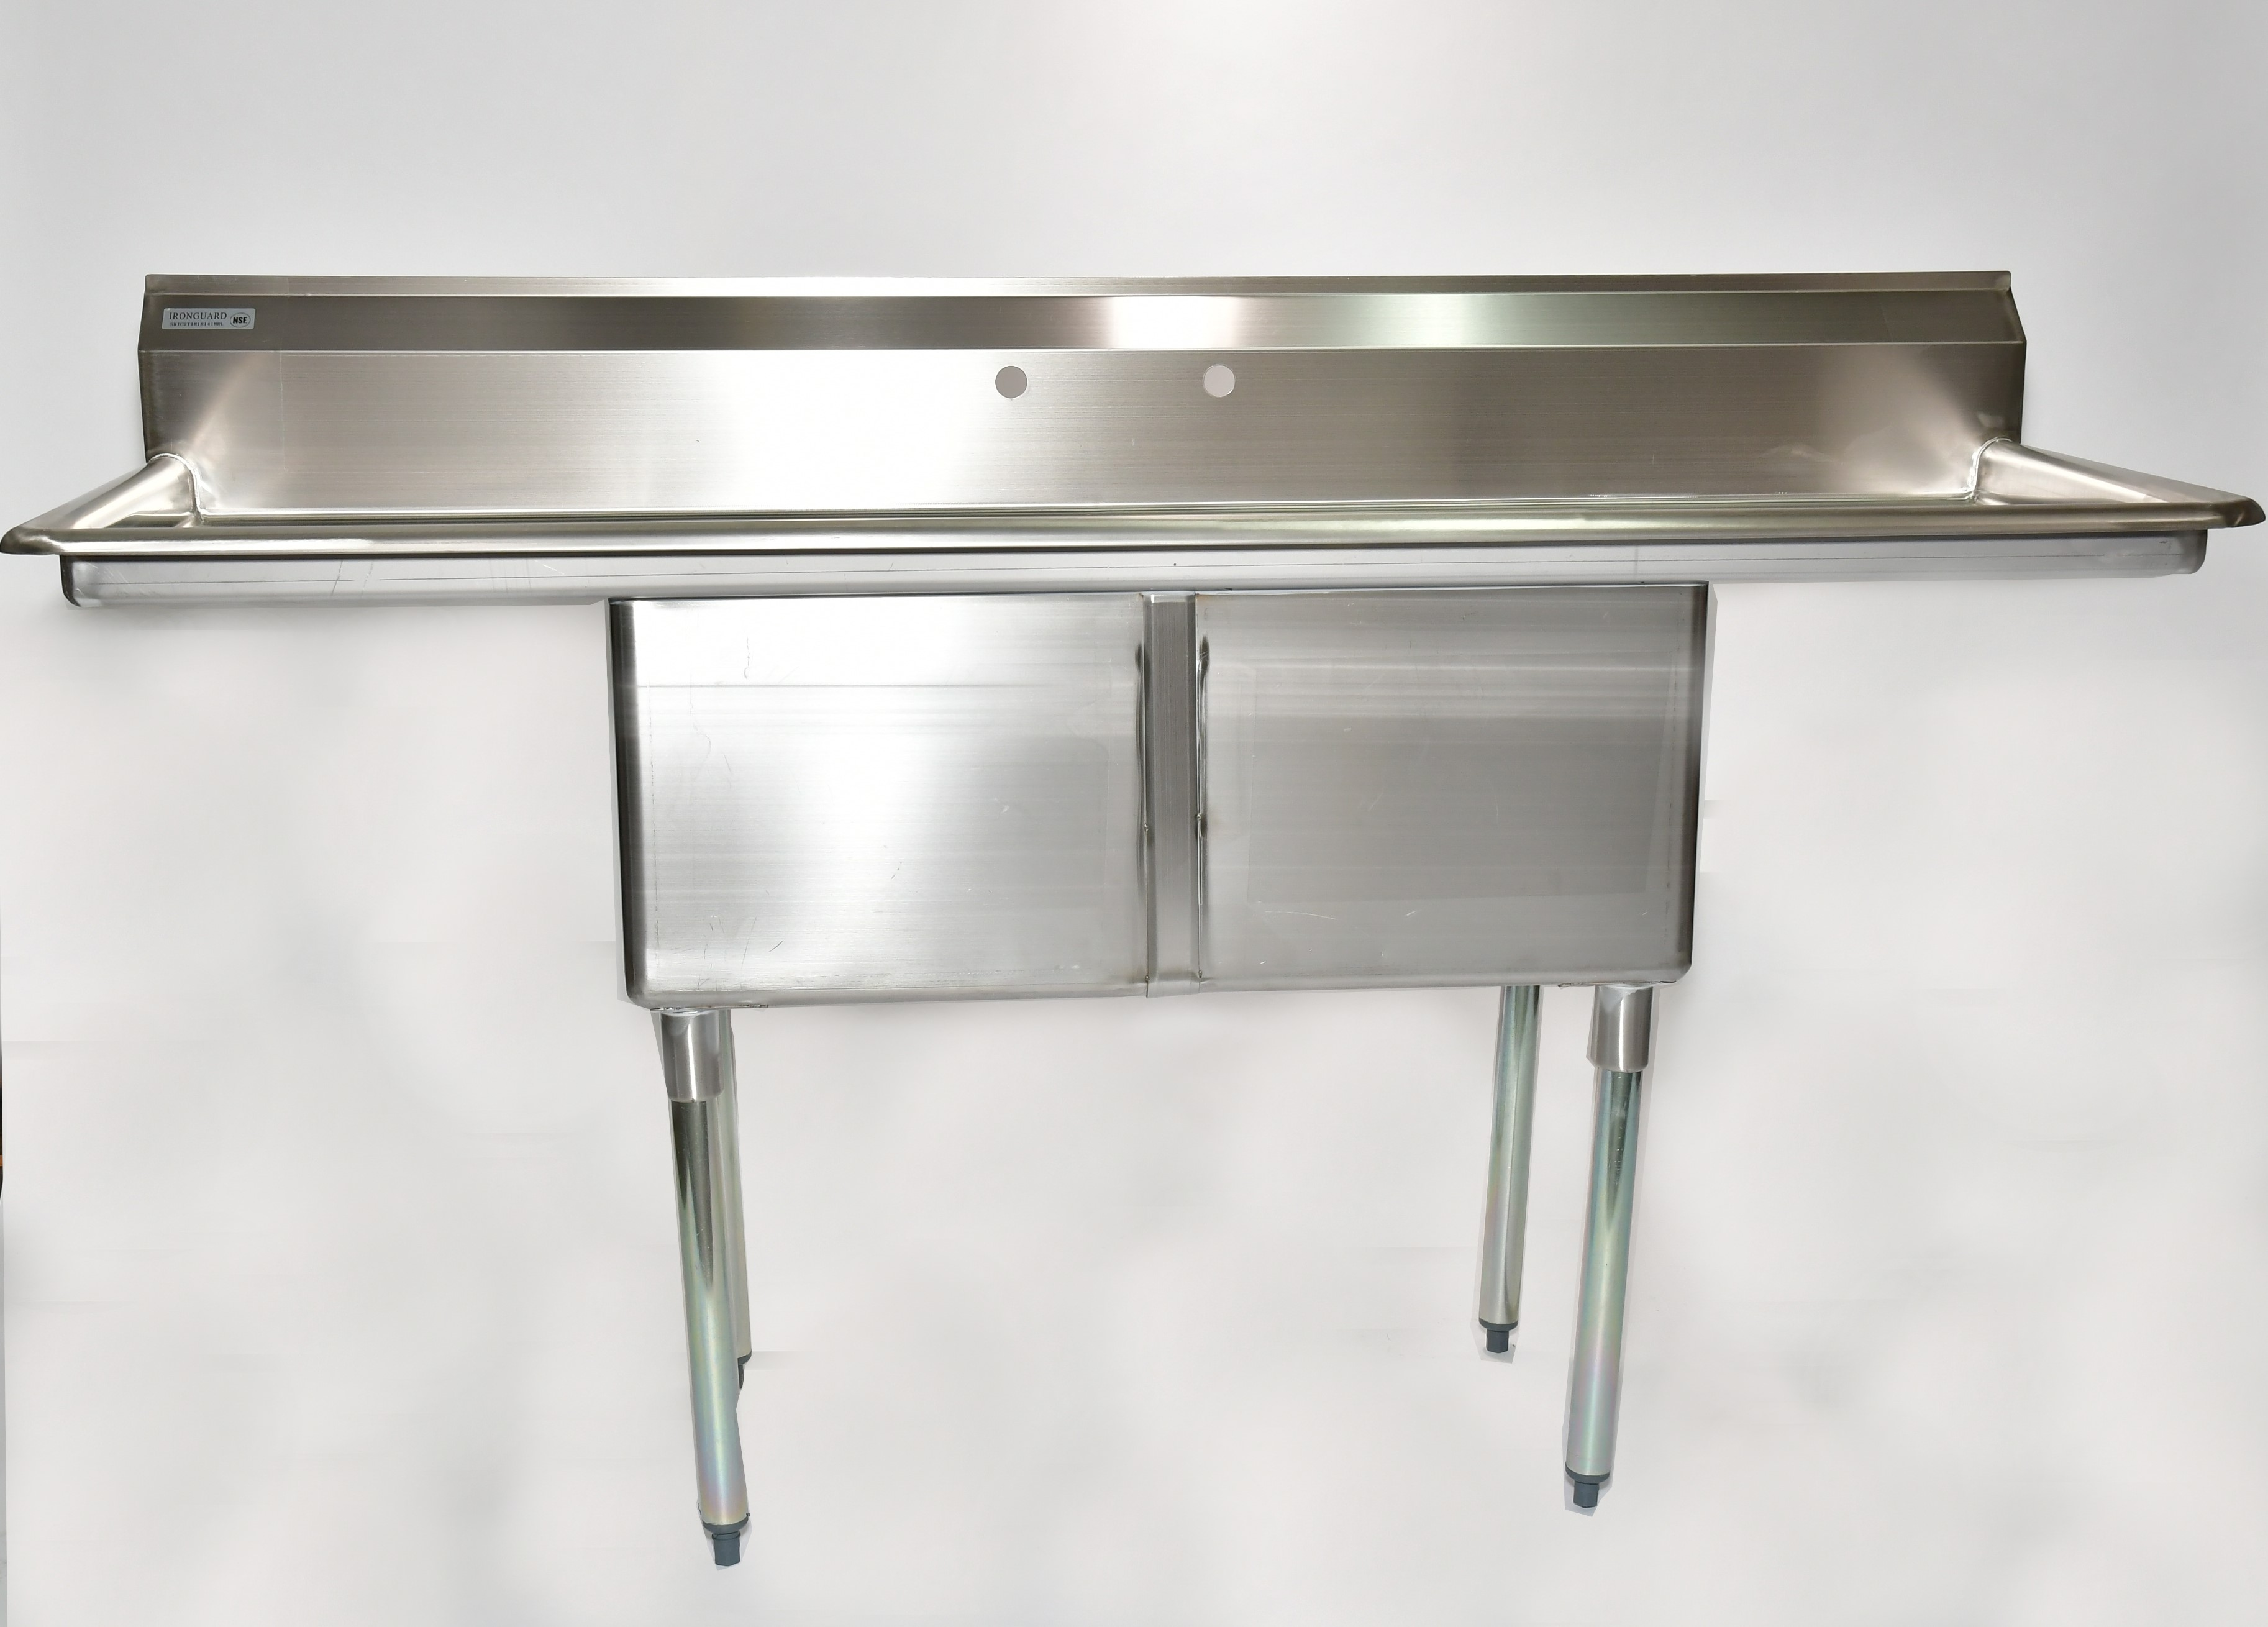 "Iron Guard-Sink 2 Comp  18 X 24 X 14 with 18"" Right and Left Drainboards 304 Top Galv Legs (SKIC2T18181418RL) 